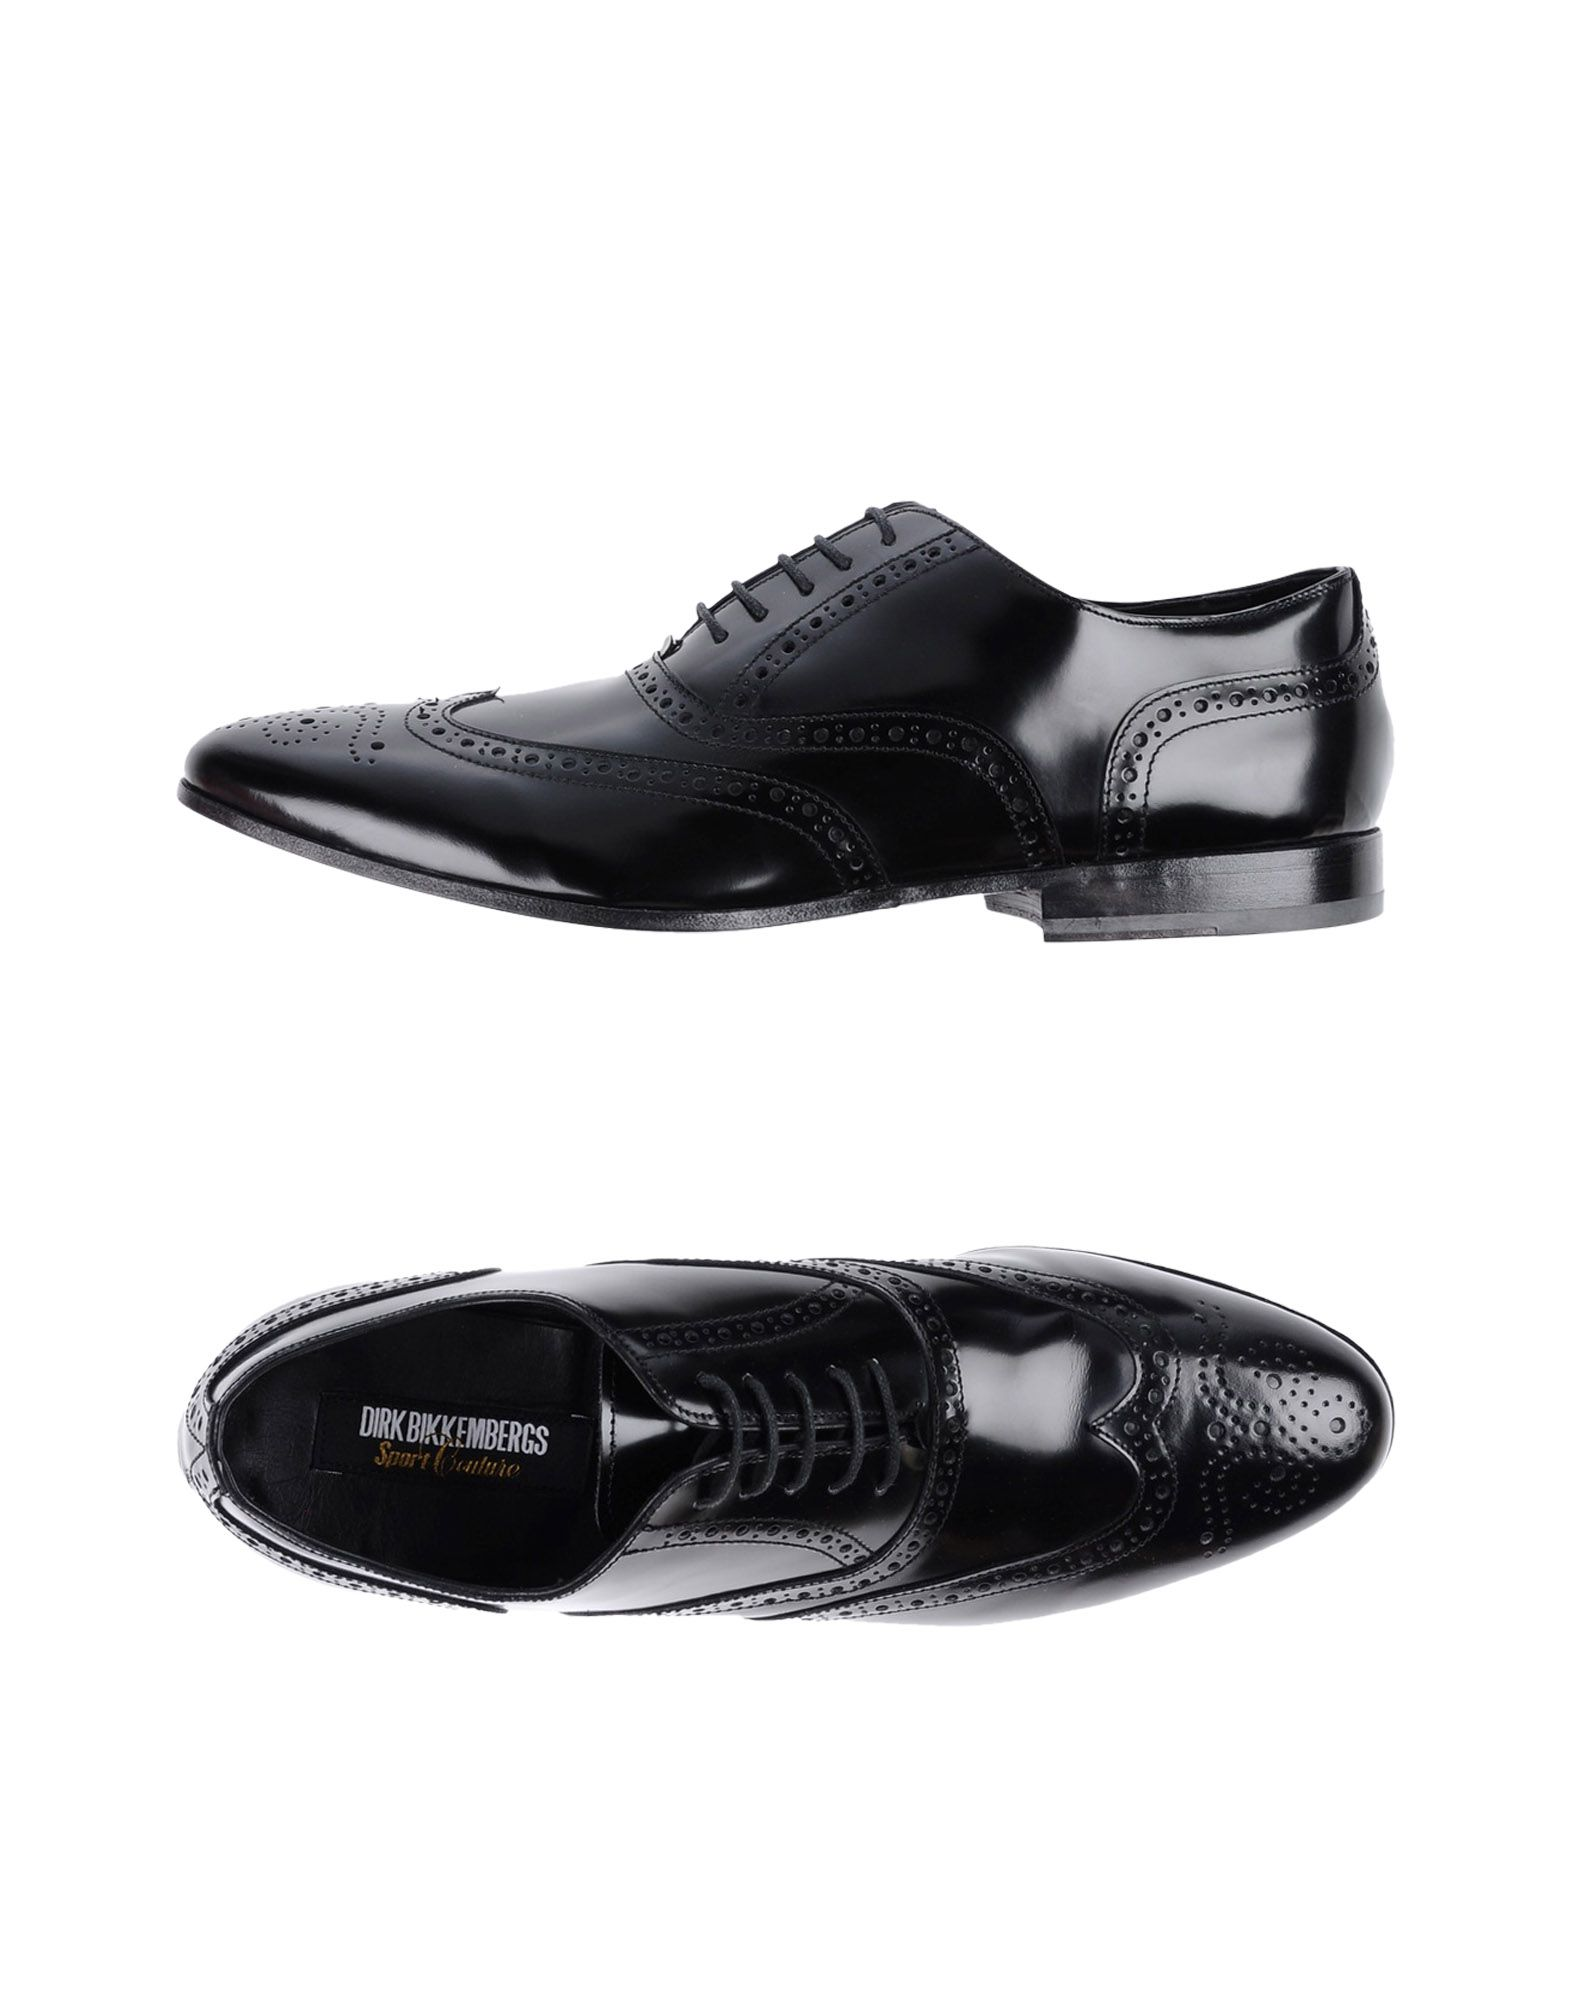 Chaussures À Lacets Dirk Bikkembergs Homme - Chaussures À Lacets Dirk Bikkembergs sur